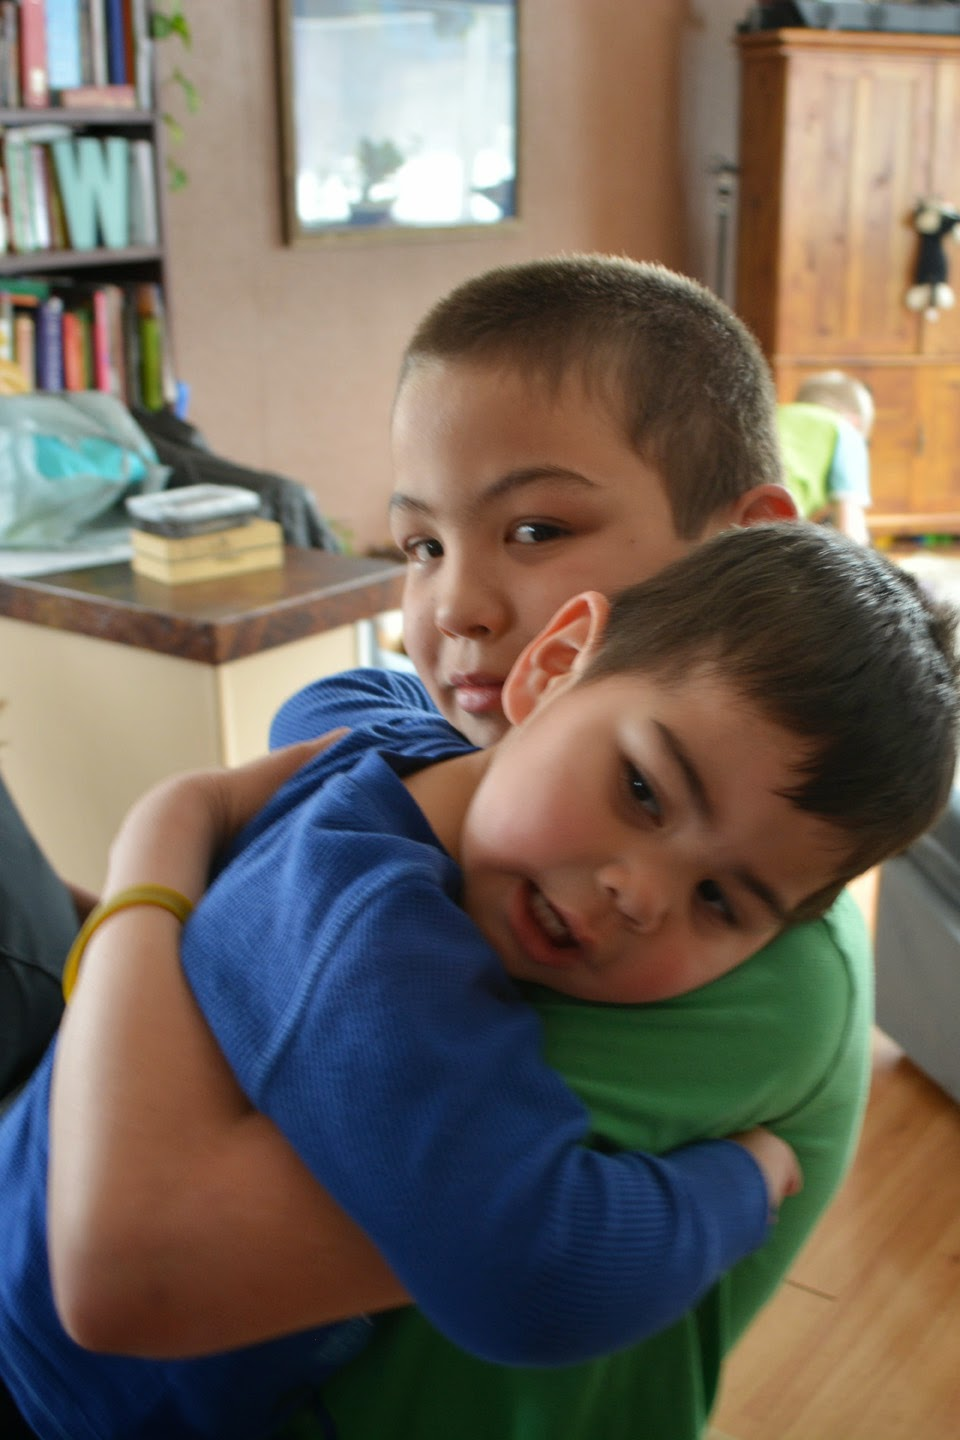 Levi gives his brother Quinton a cuddle.